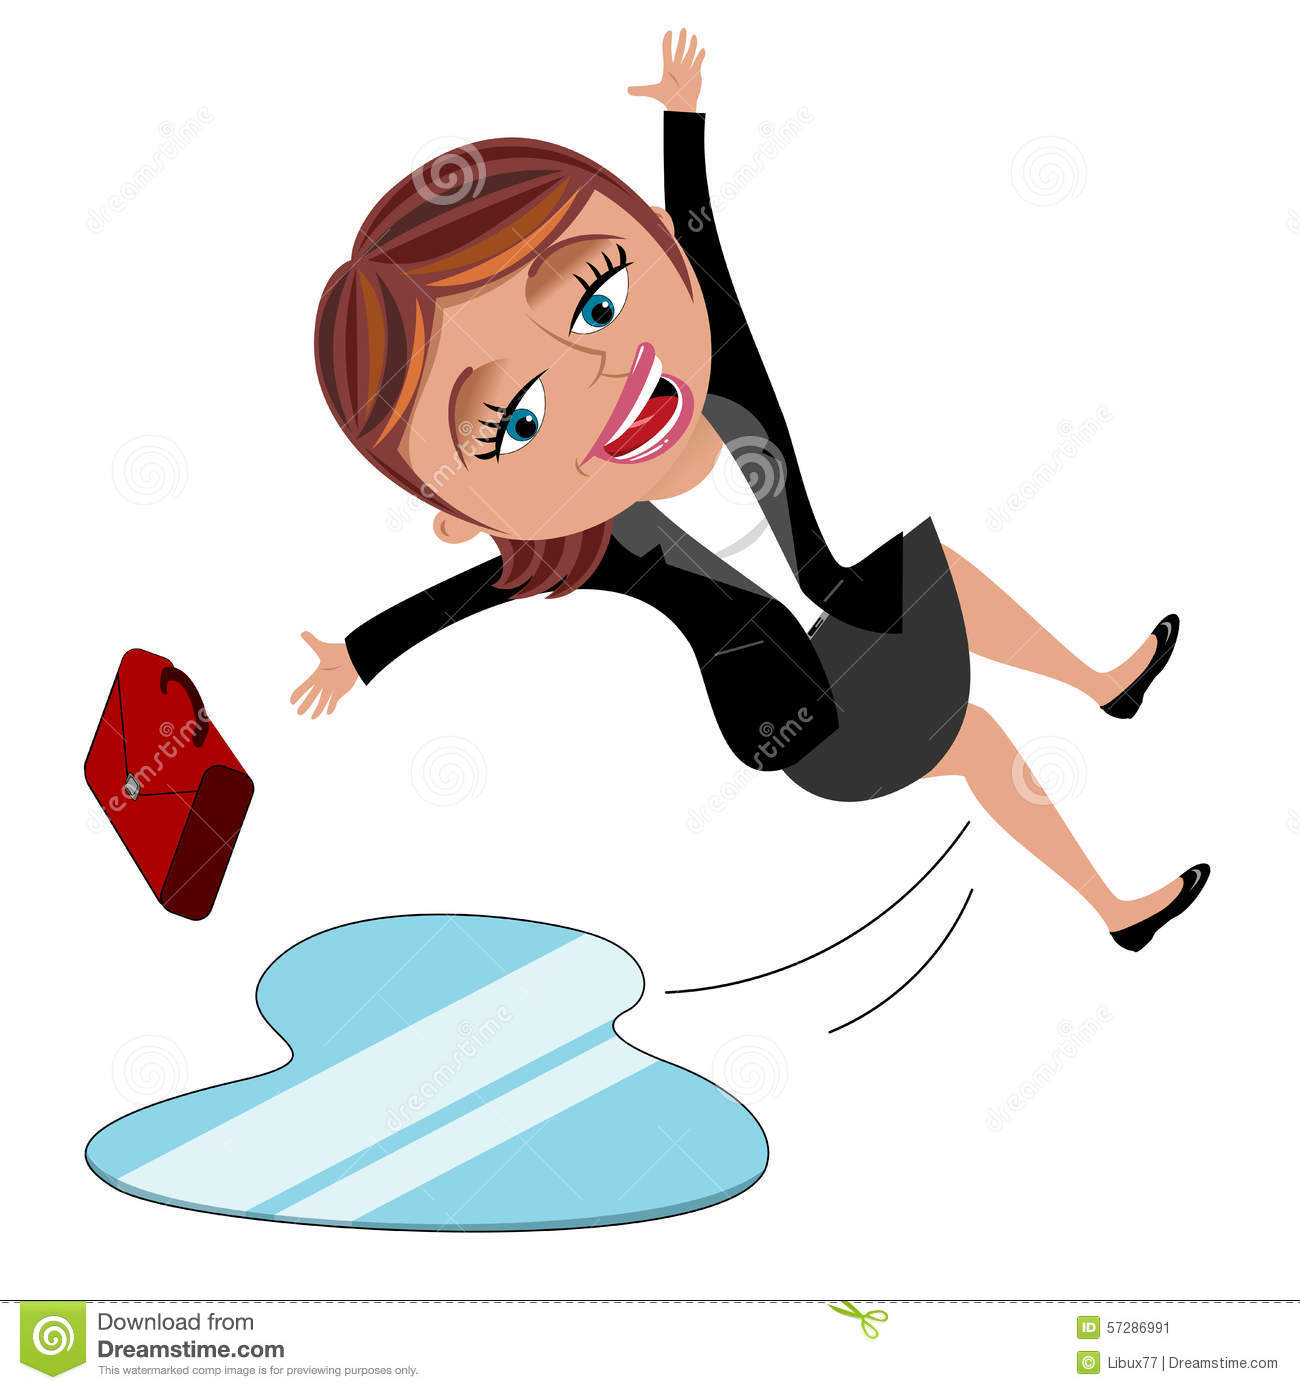 slip and fall clip art free - photo #10